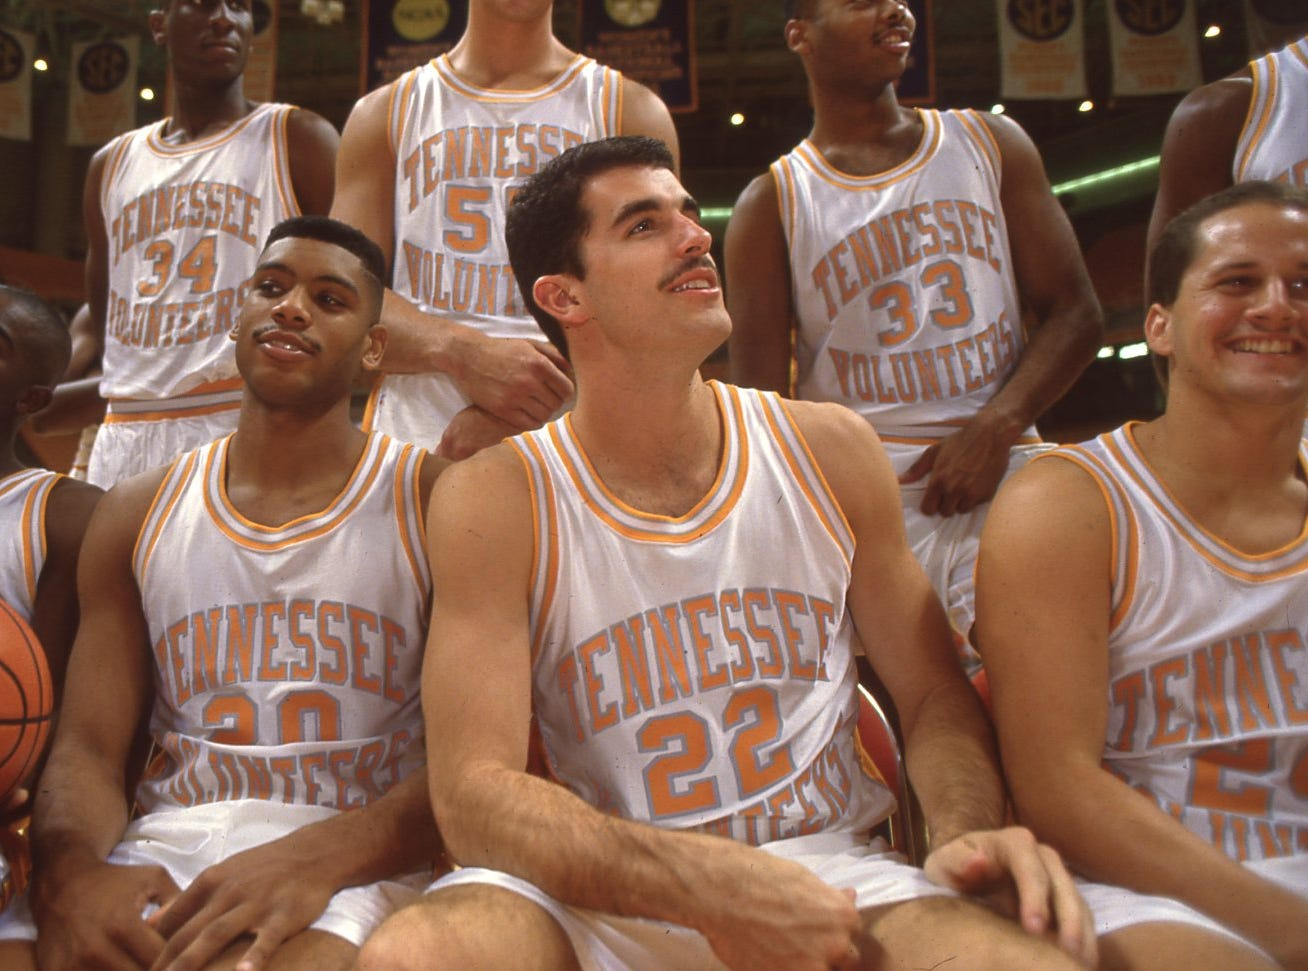 Laughing it up while the official photographer tries to make a team photo at Vols Media Day in October 1991.